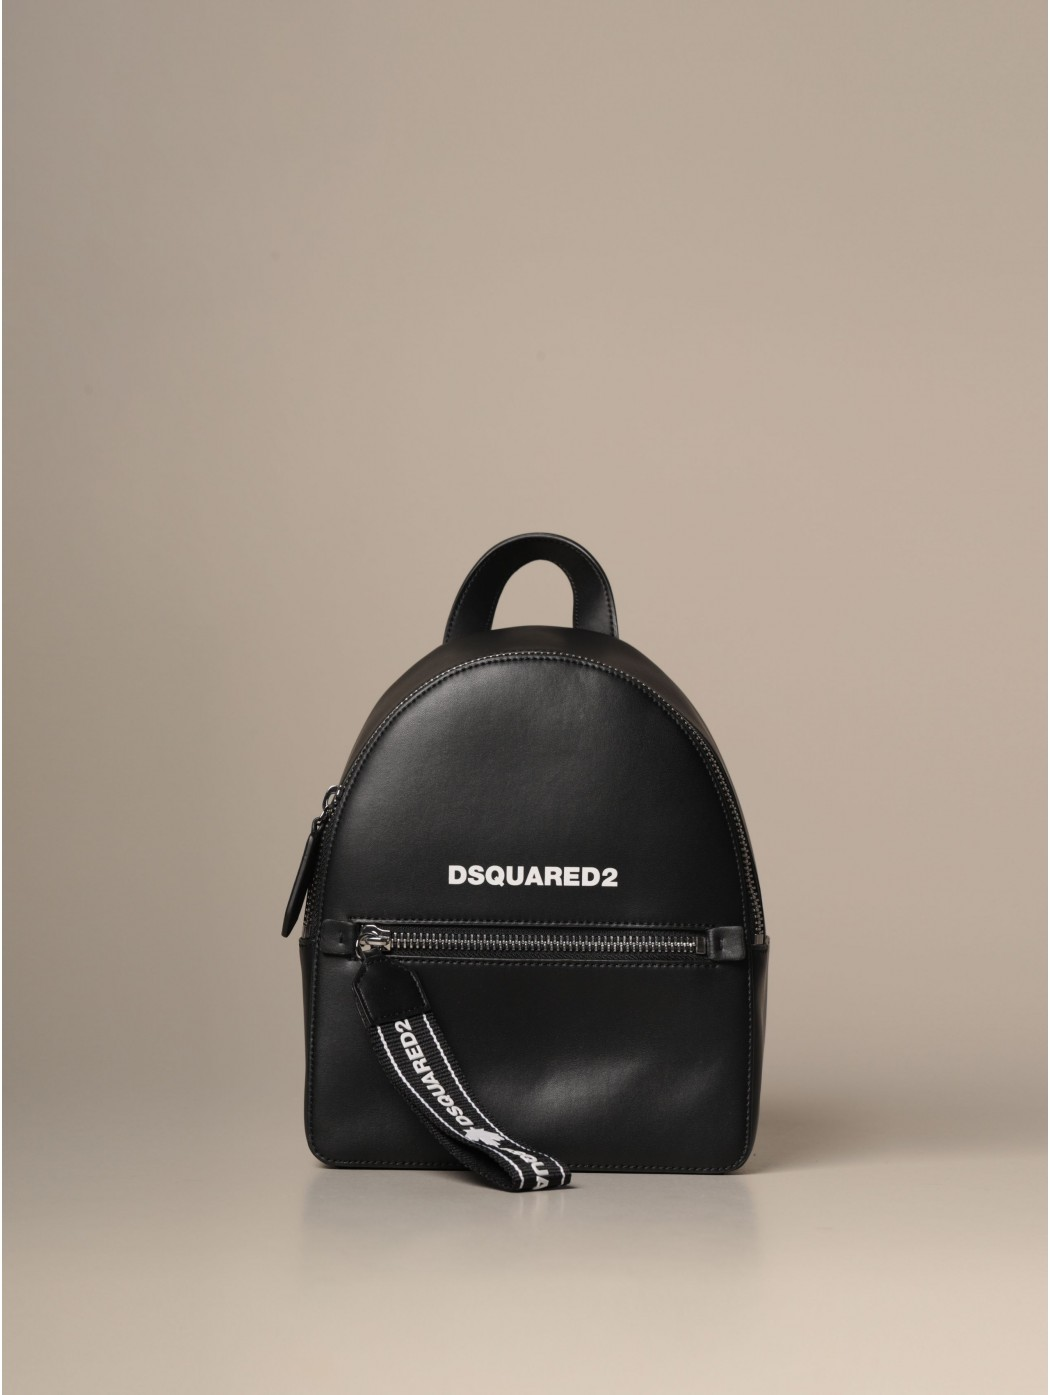 BACKPACK DSQUARED2 DSQUARED2 BPW000501501155 2124